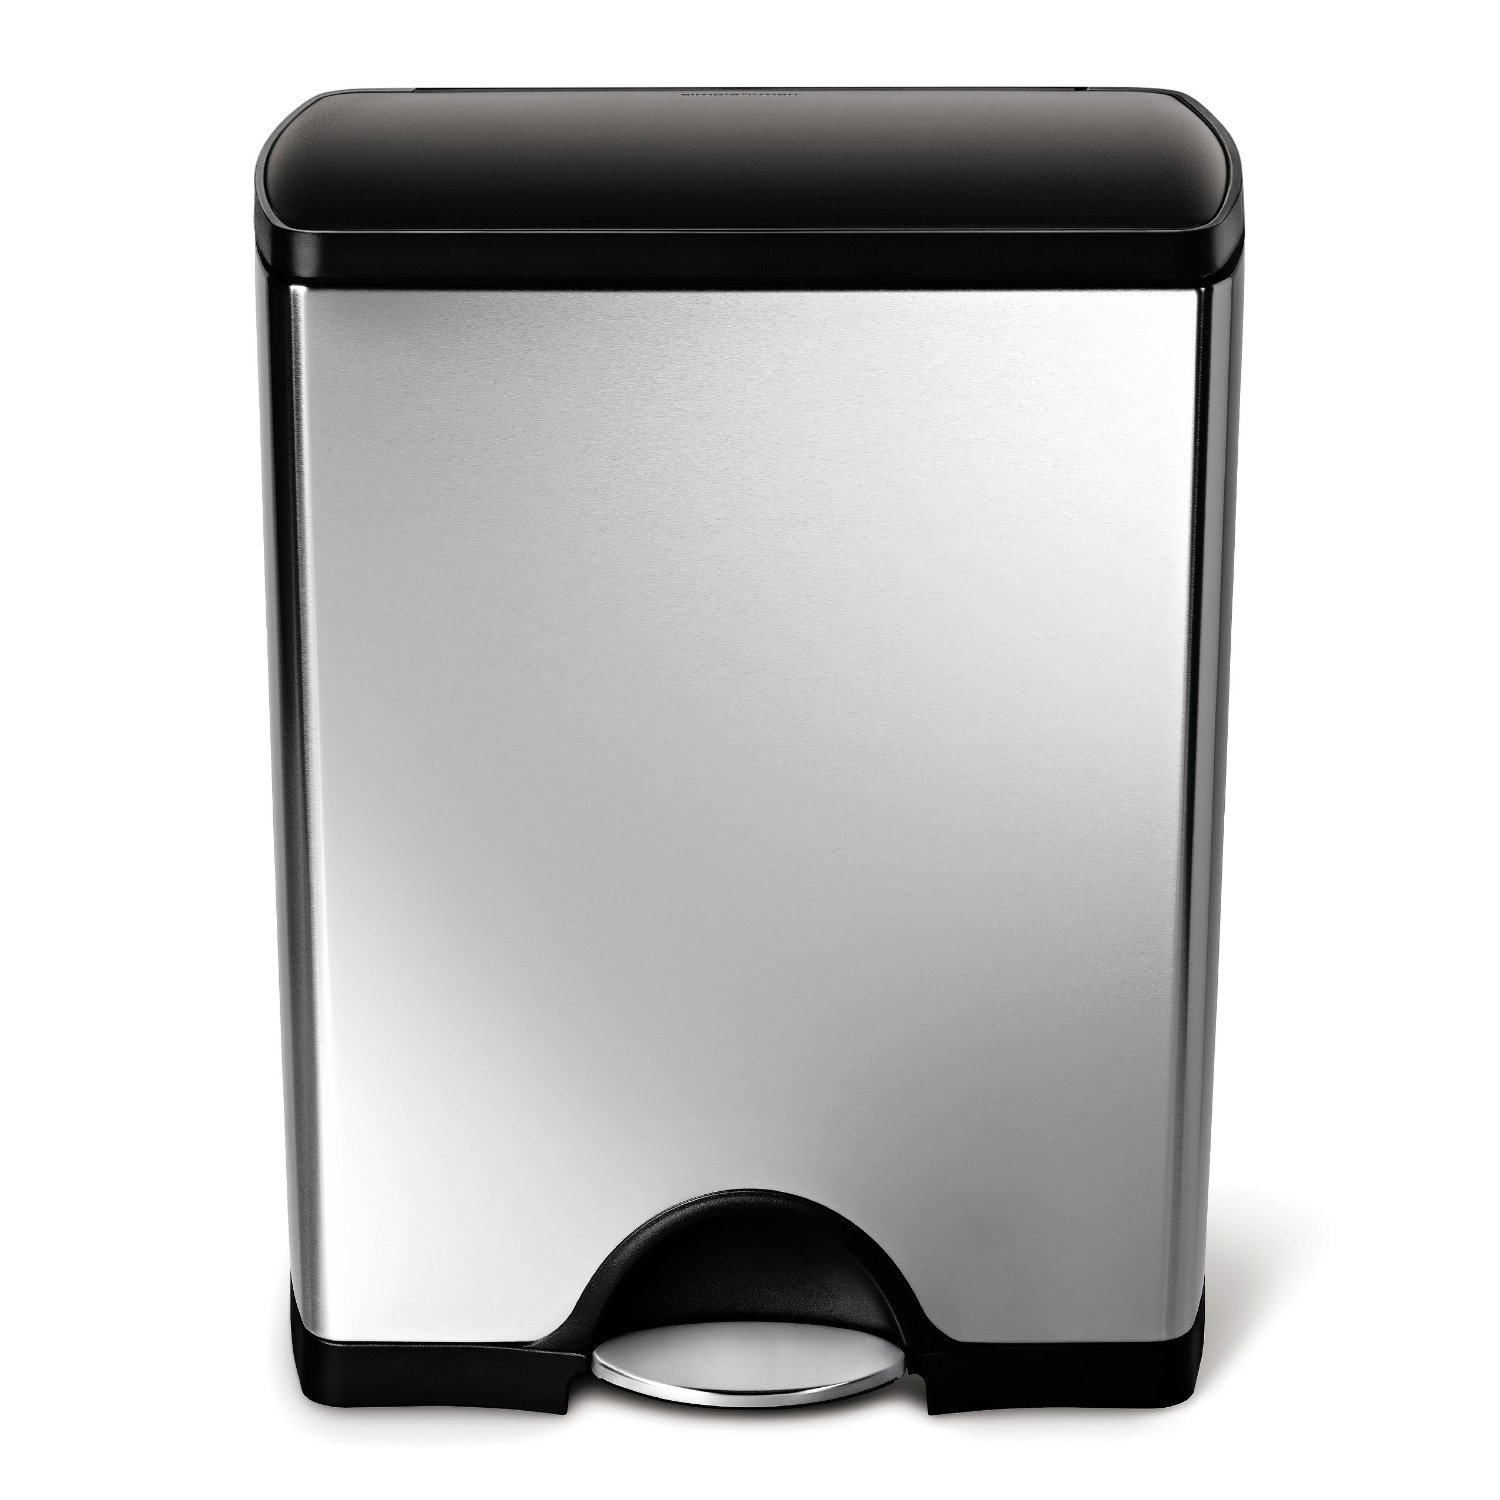 simplehuman Rectangular Recycling Step Trash Can, Stainless Steel, Plastic Lid, 46 Liter / 12 Gallon